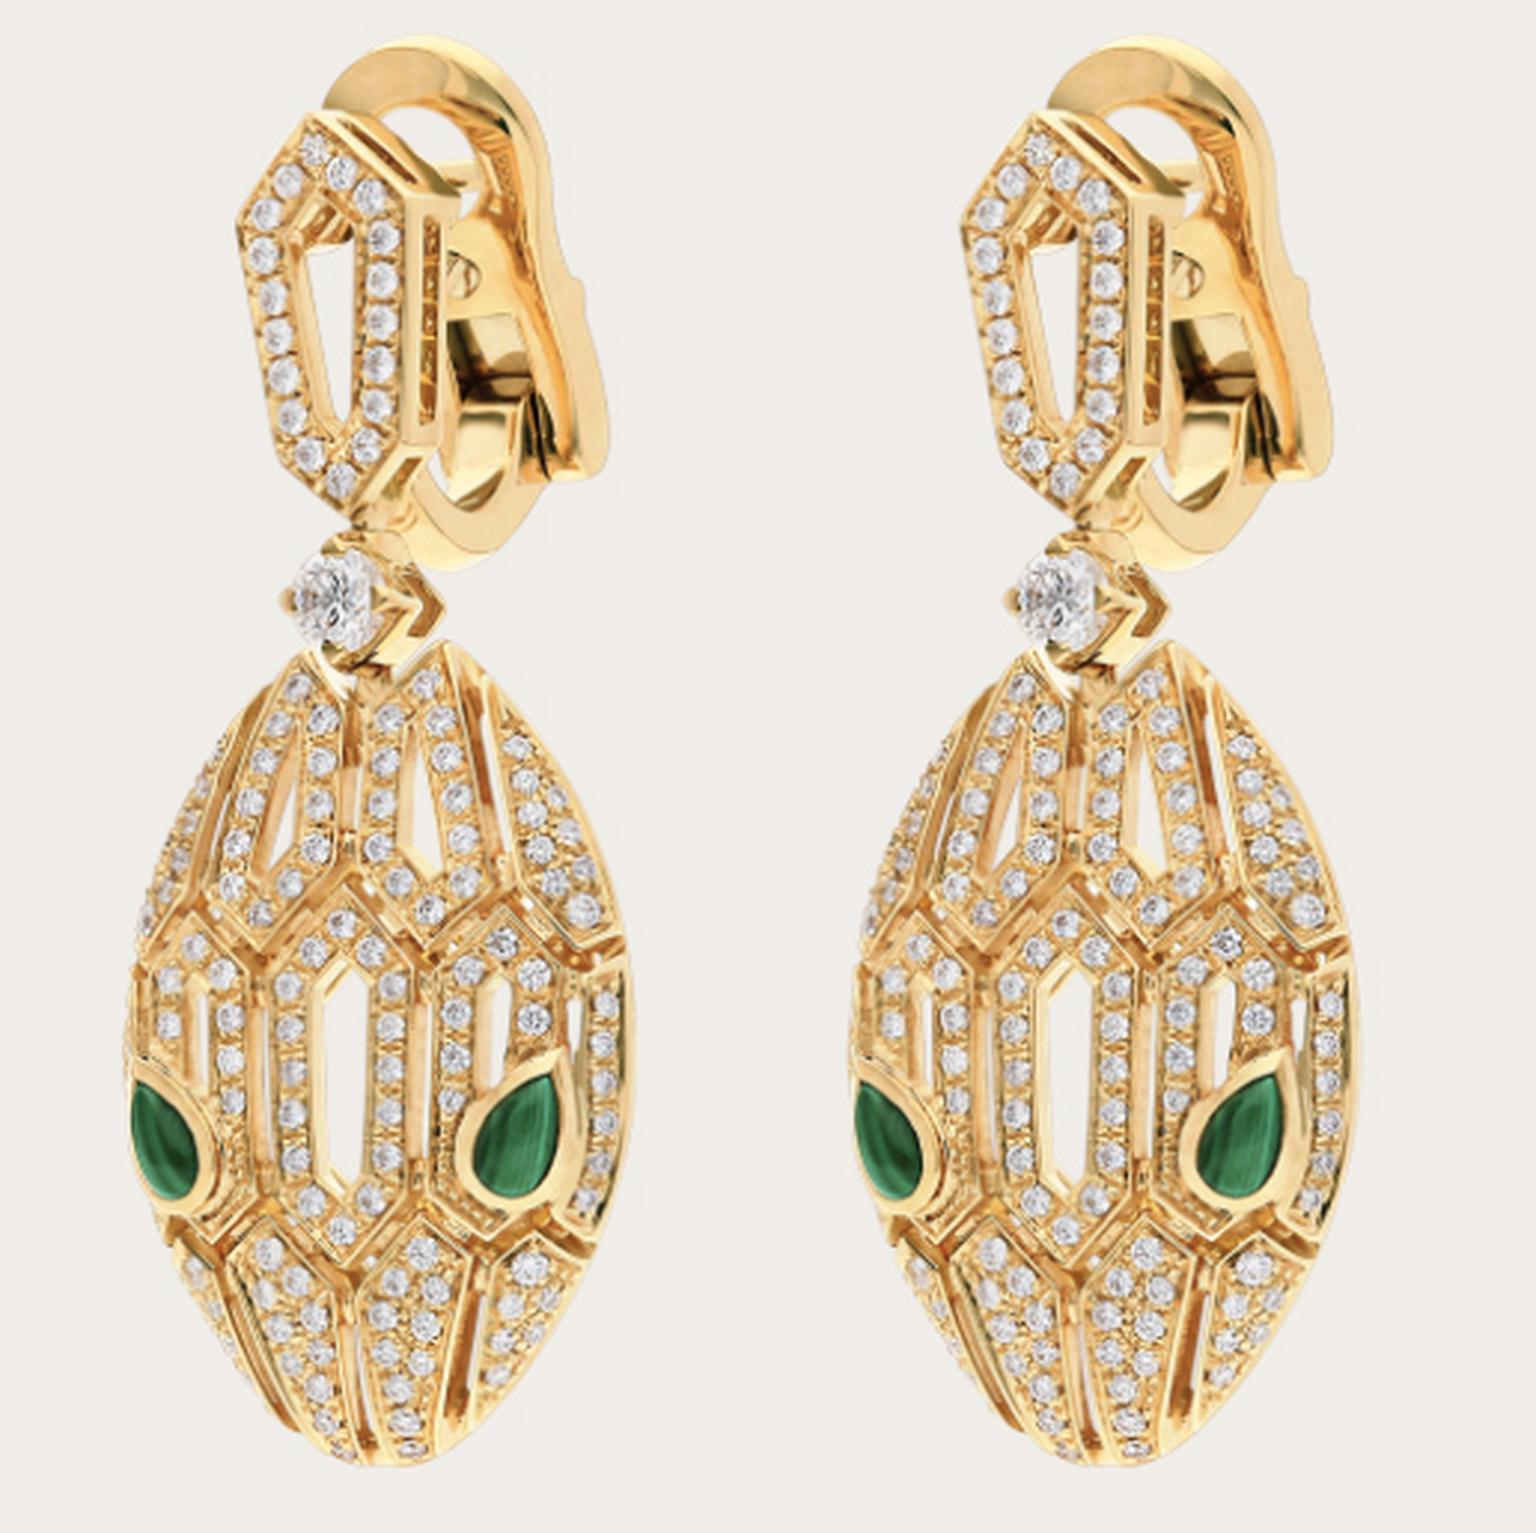 Serpenti earrrings by Bulgari